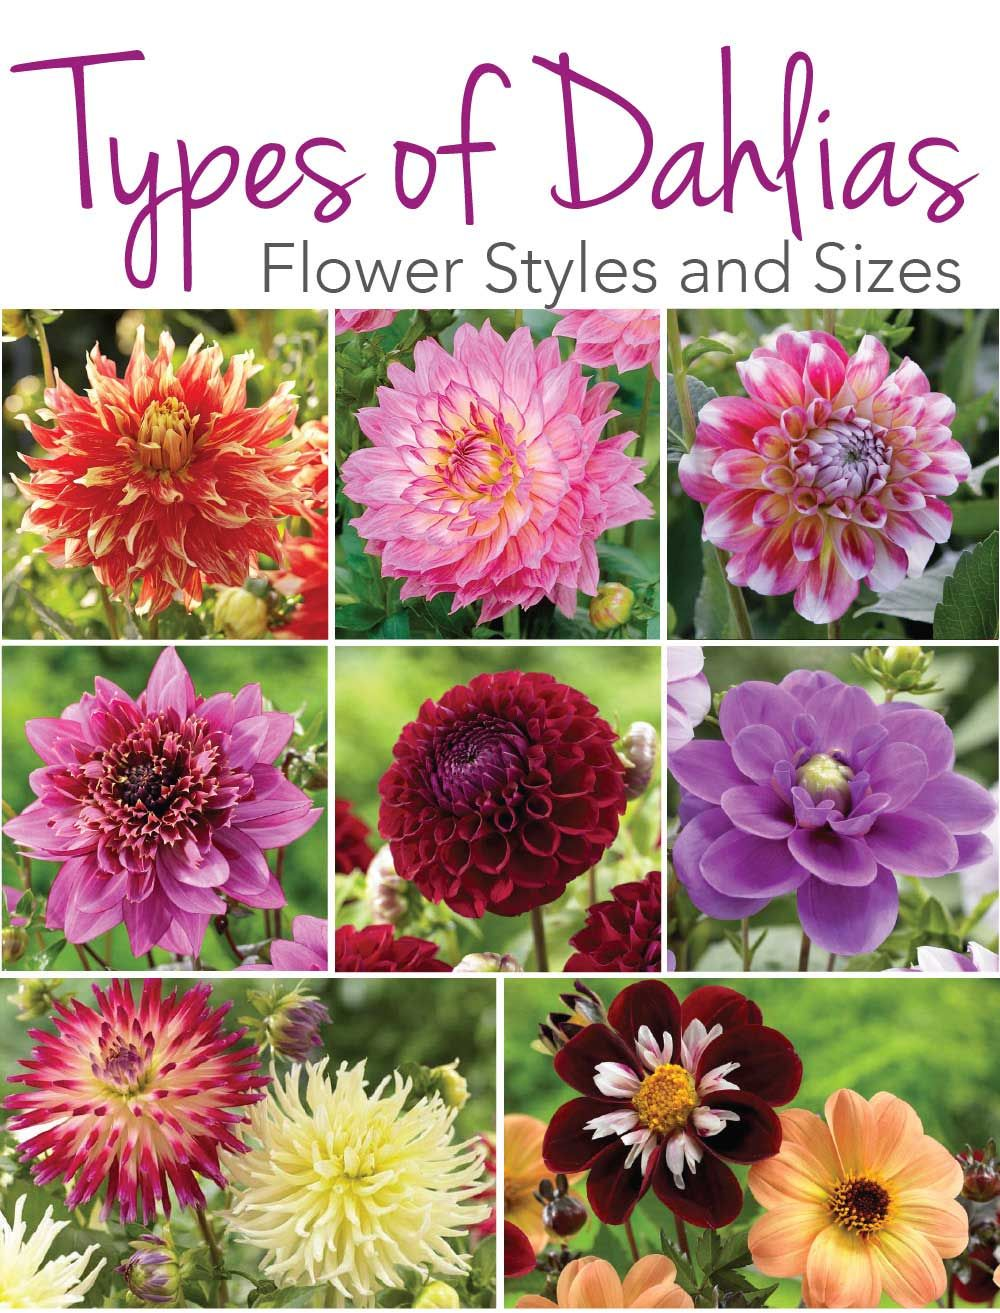 Know Your Dahlias Flower Styles And Sizes Flowers Dahlia Flower